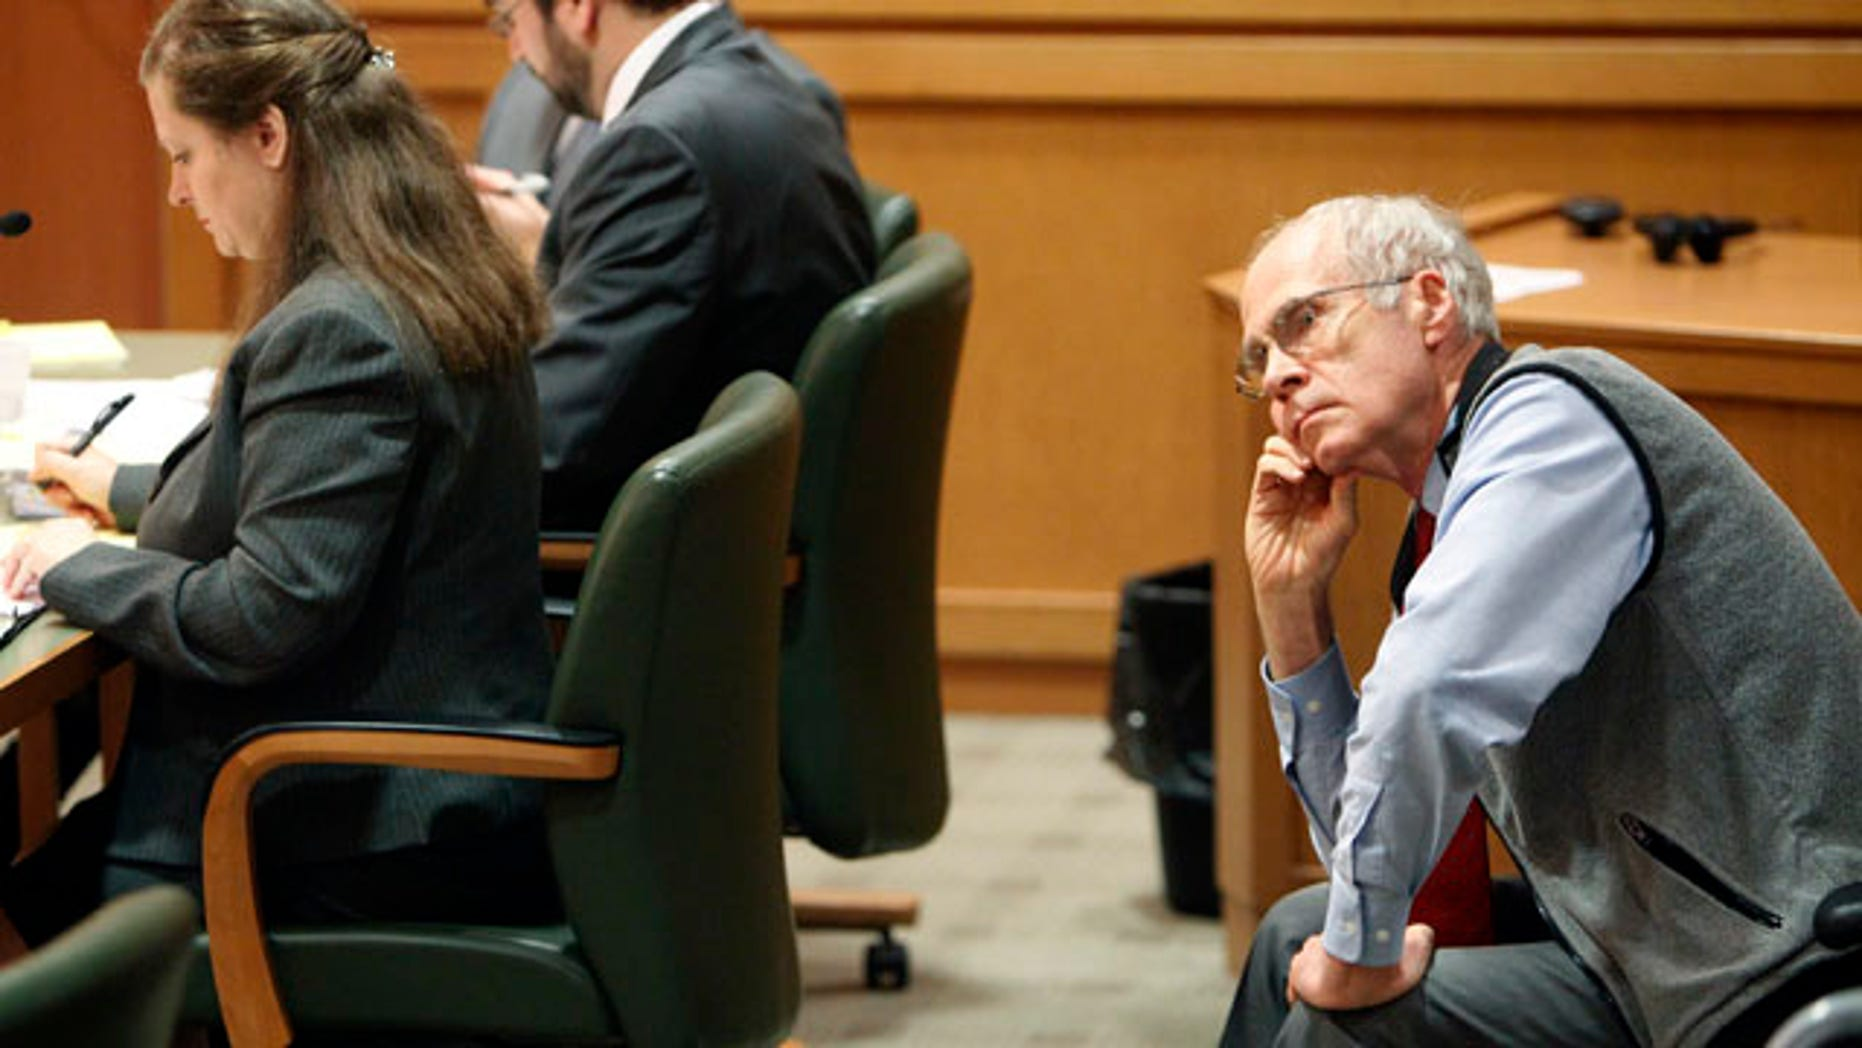 March 18: Wisconsin Secretary of State Doug La Follette listens to arguments during a hearing in Dane County Court in Madison, Wis.